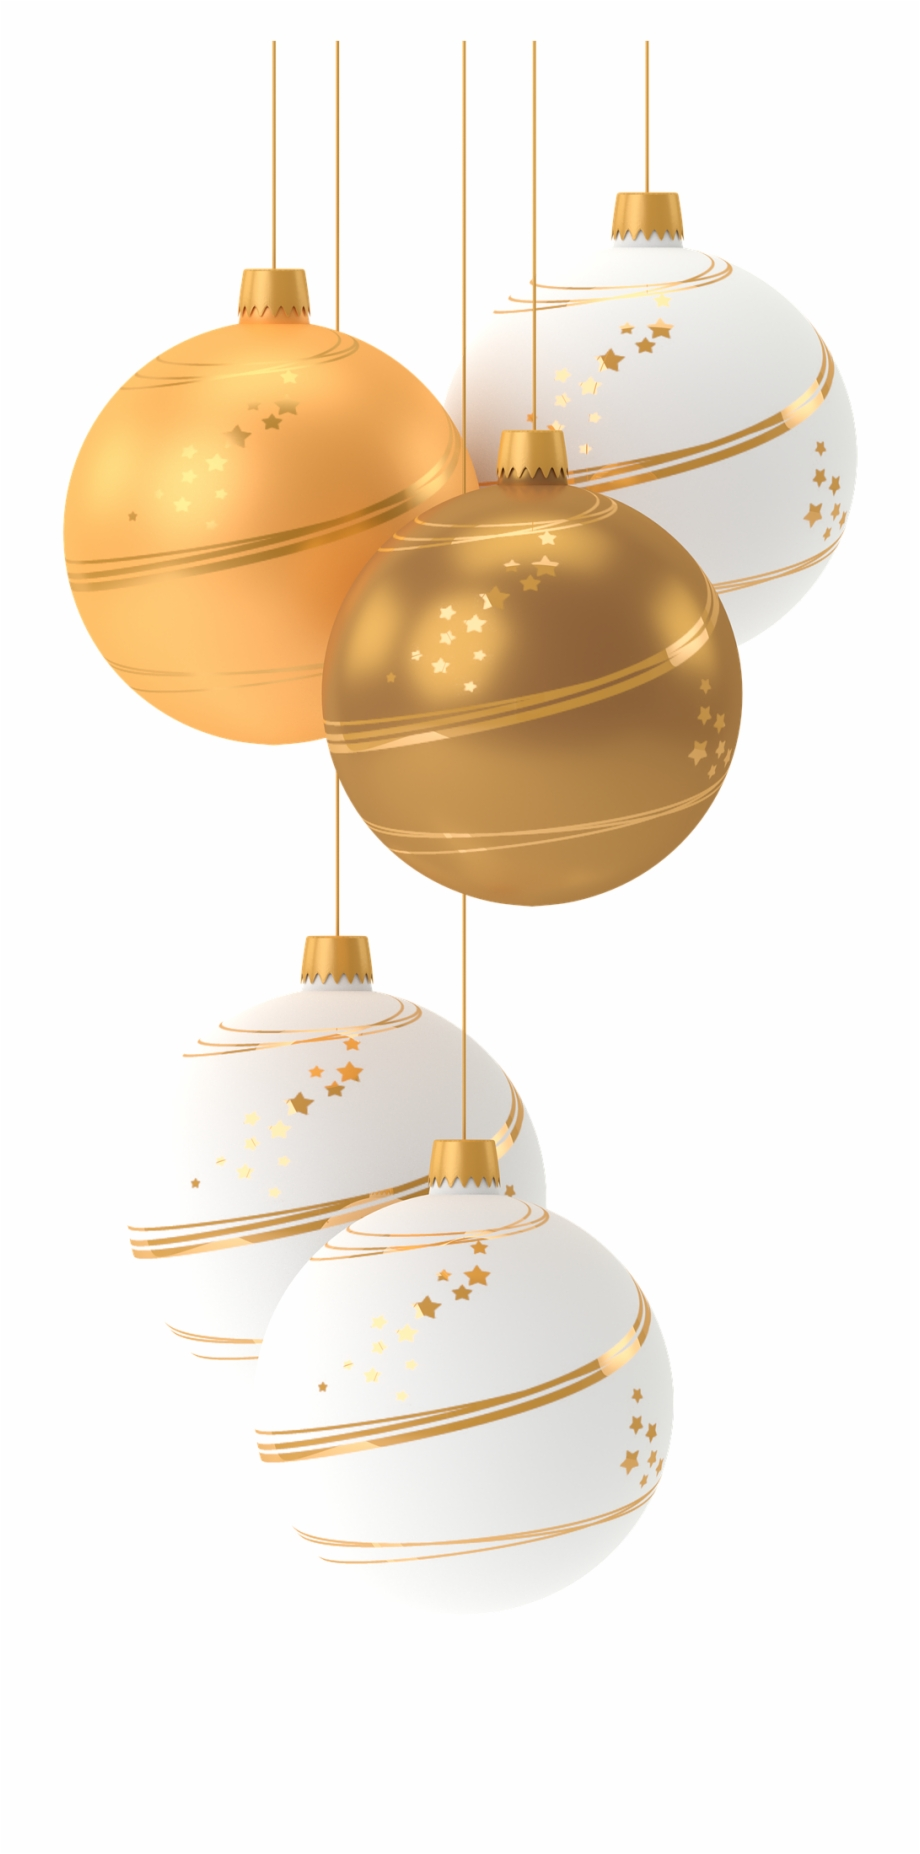 jewelry christmas toys jewelry christmas tree toy rose gold christmas decorations transparent background transparent png download 3857983 vippng jewelry christmas toys jewelry